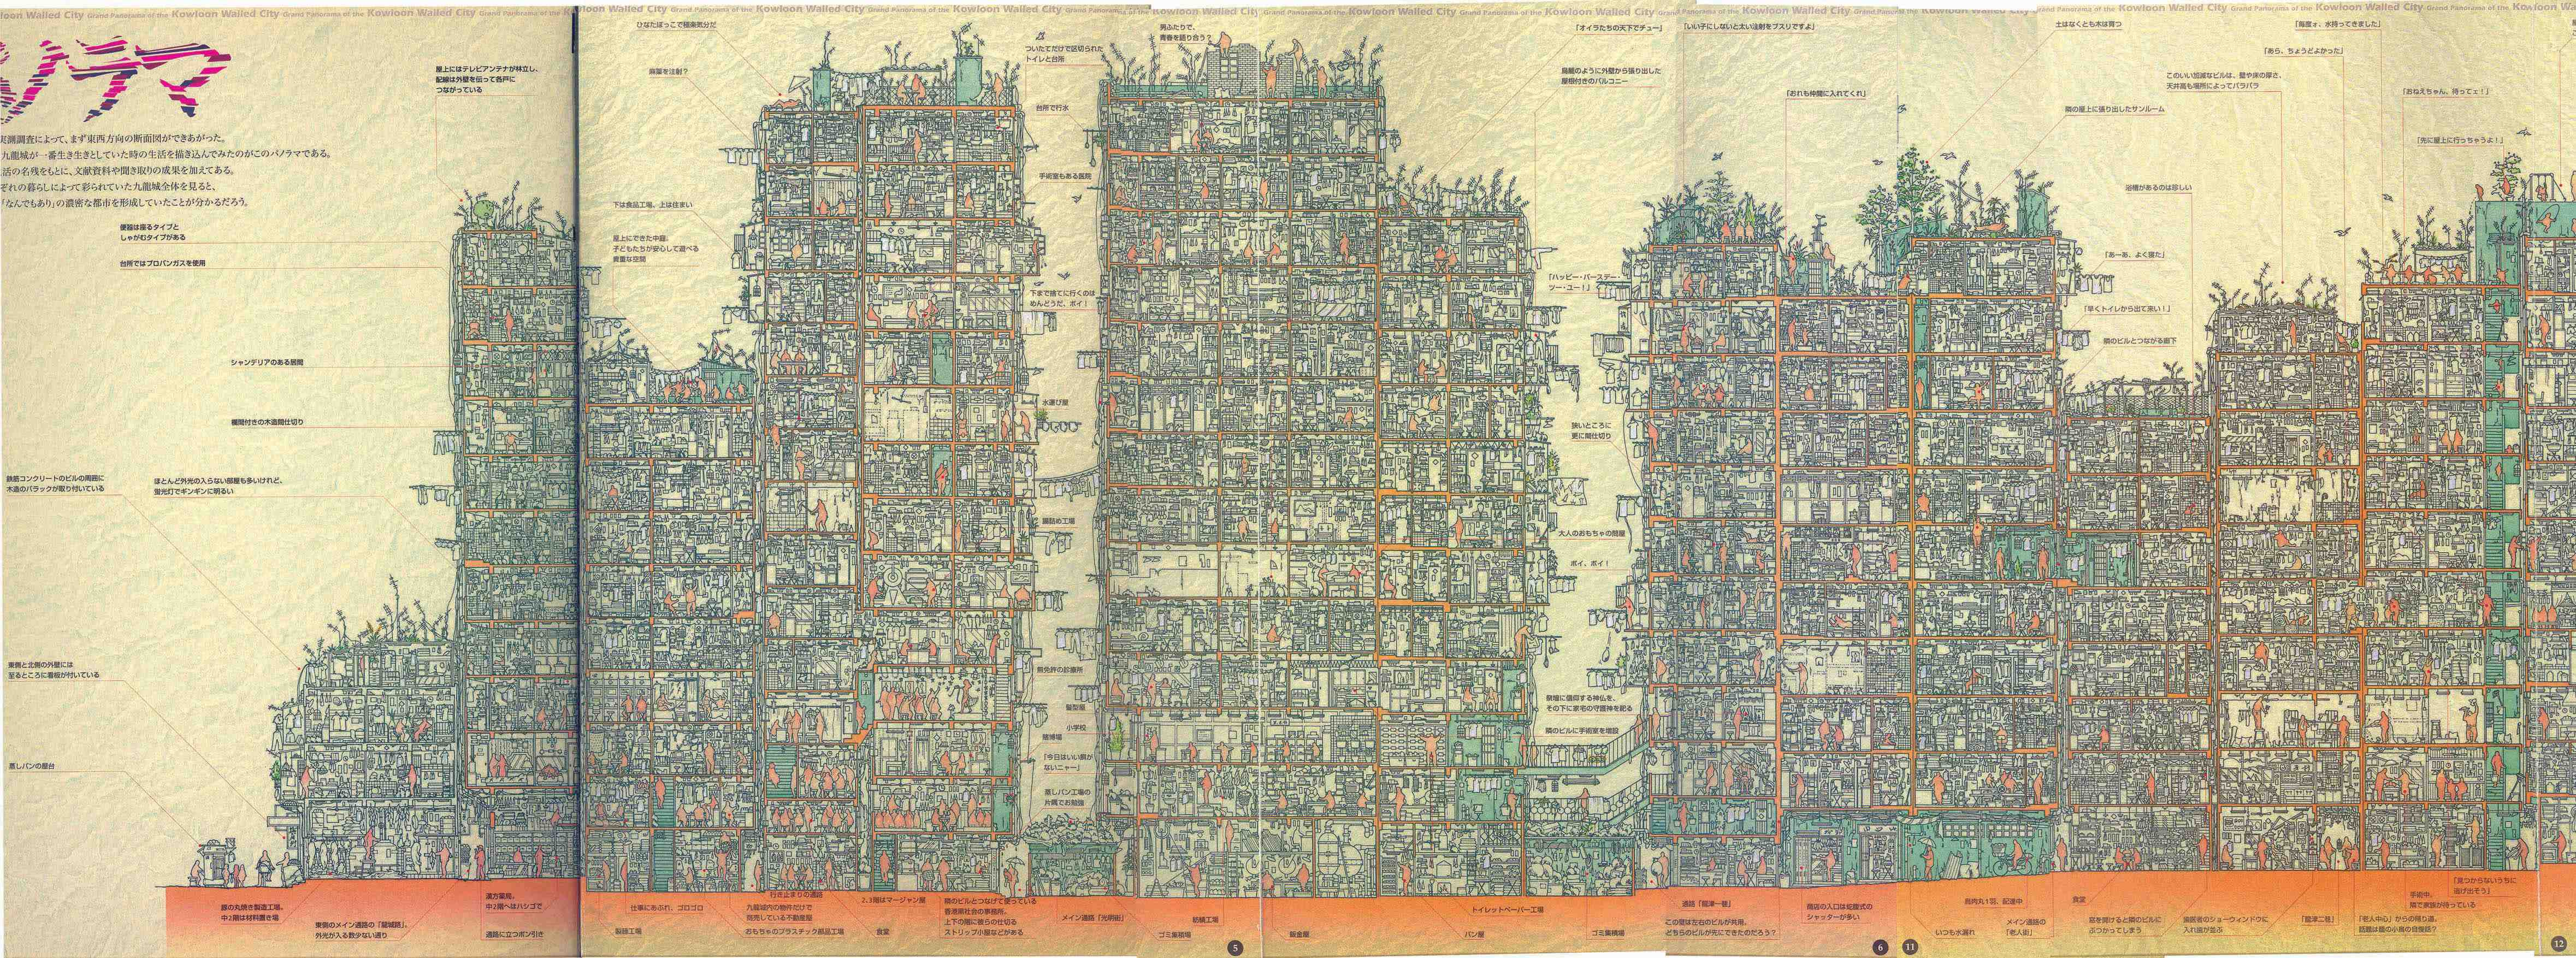 Kowloon Walled City - Crosssection drawn by Hitomi Terasawa